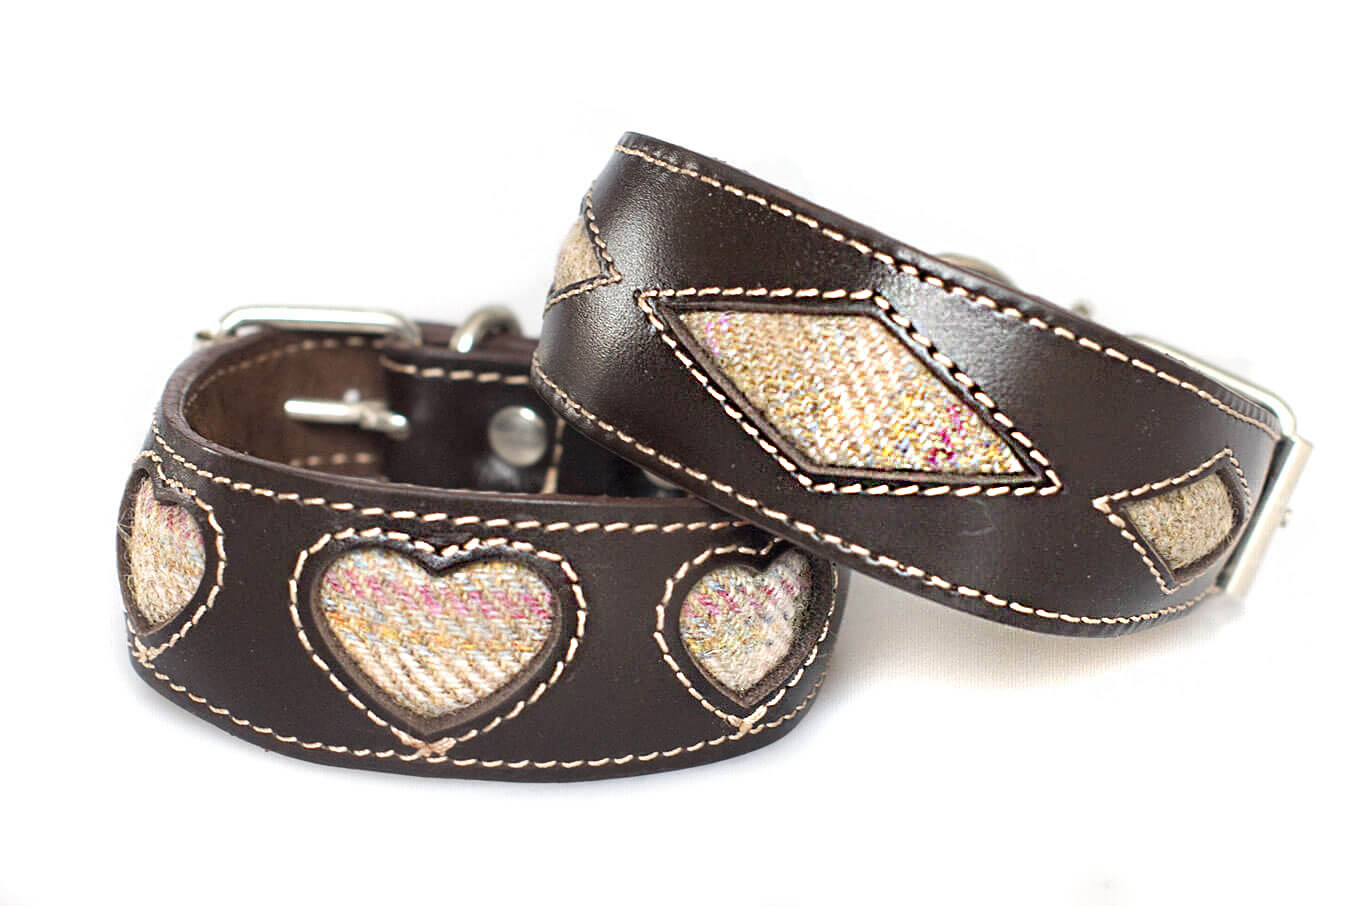 Our tweed leather hound collars are available hearts and rhombi shapes